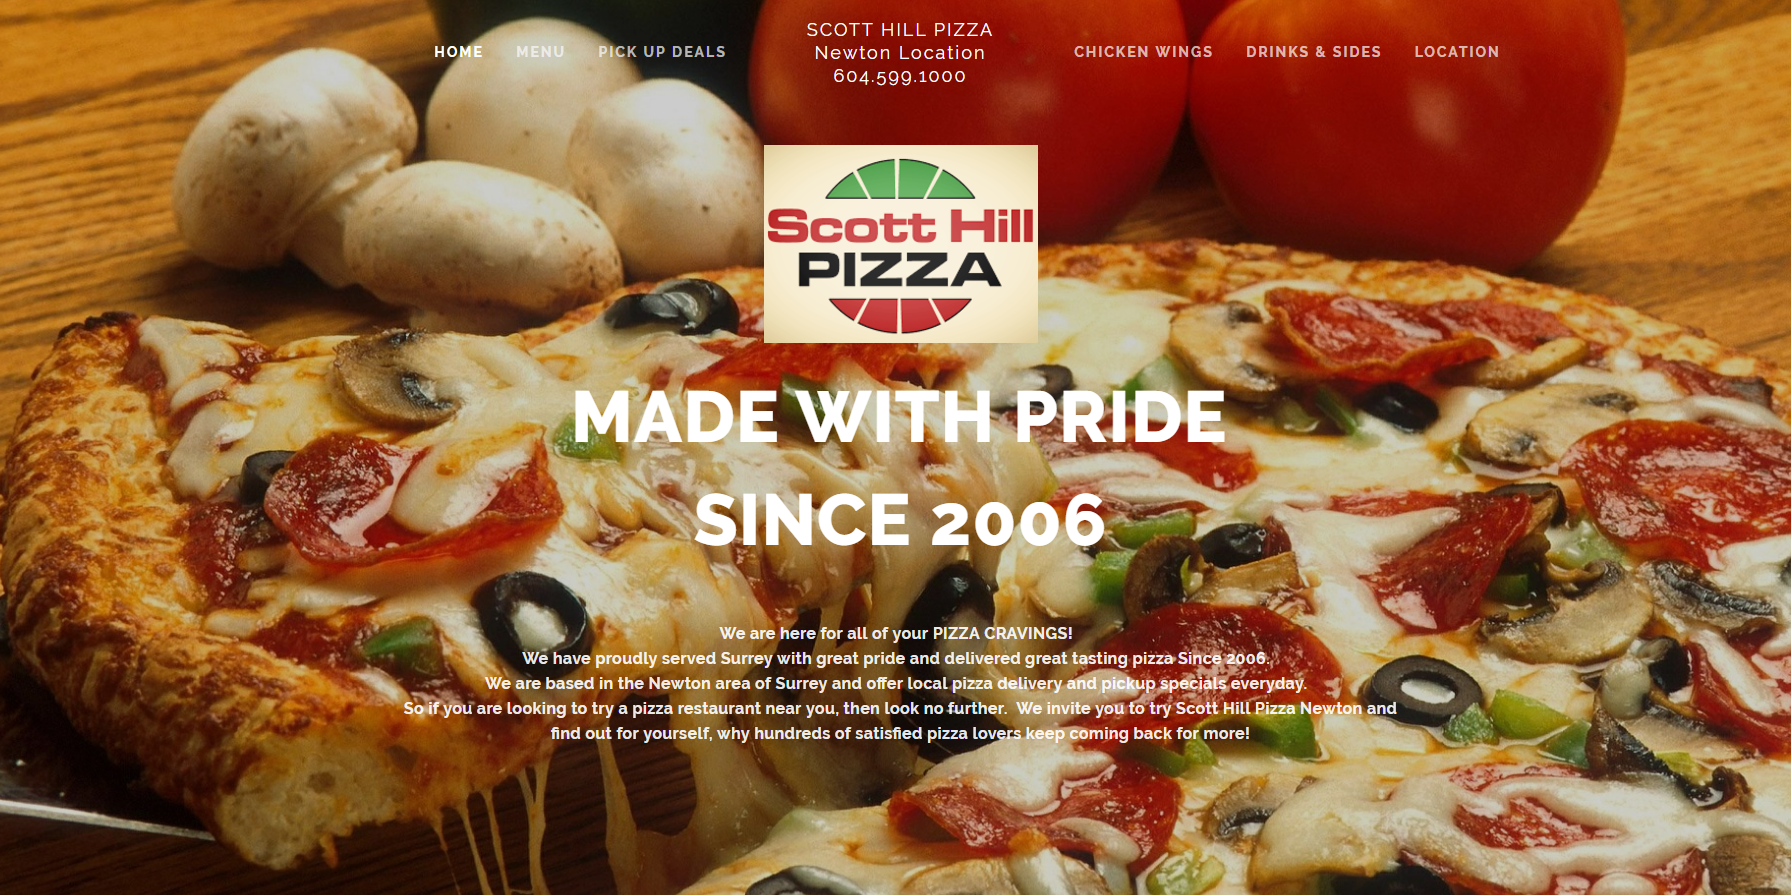 Scott Hill Pizza - A well established pizza business looking to improve their branding & mobile phone experience. Their visual appeal was enhanced with menu options redesigned to be YUMMY!